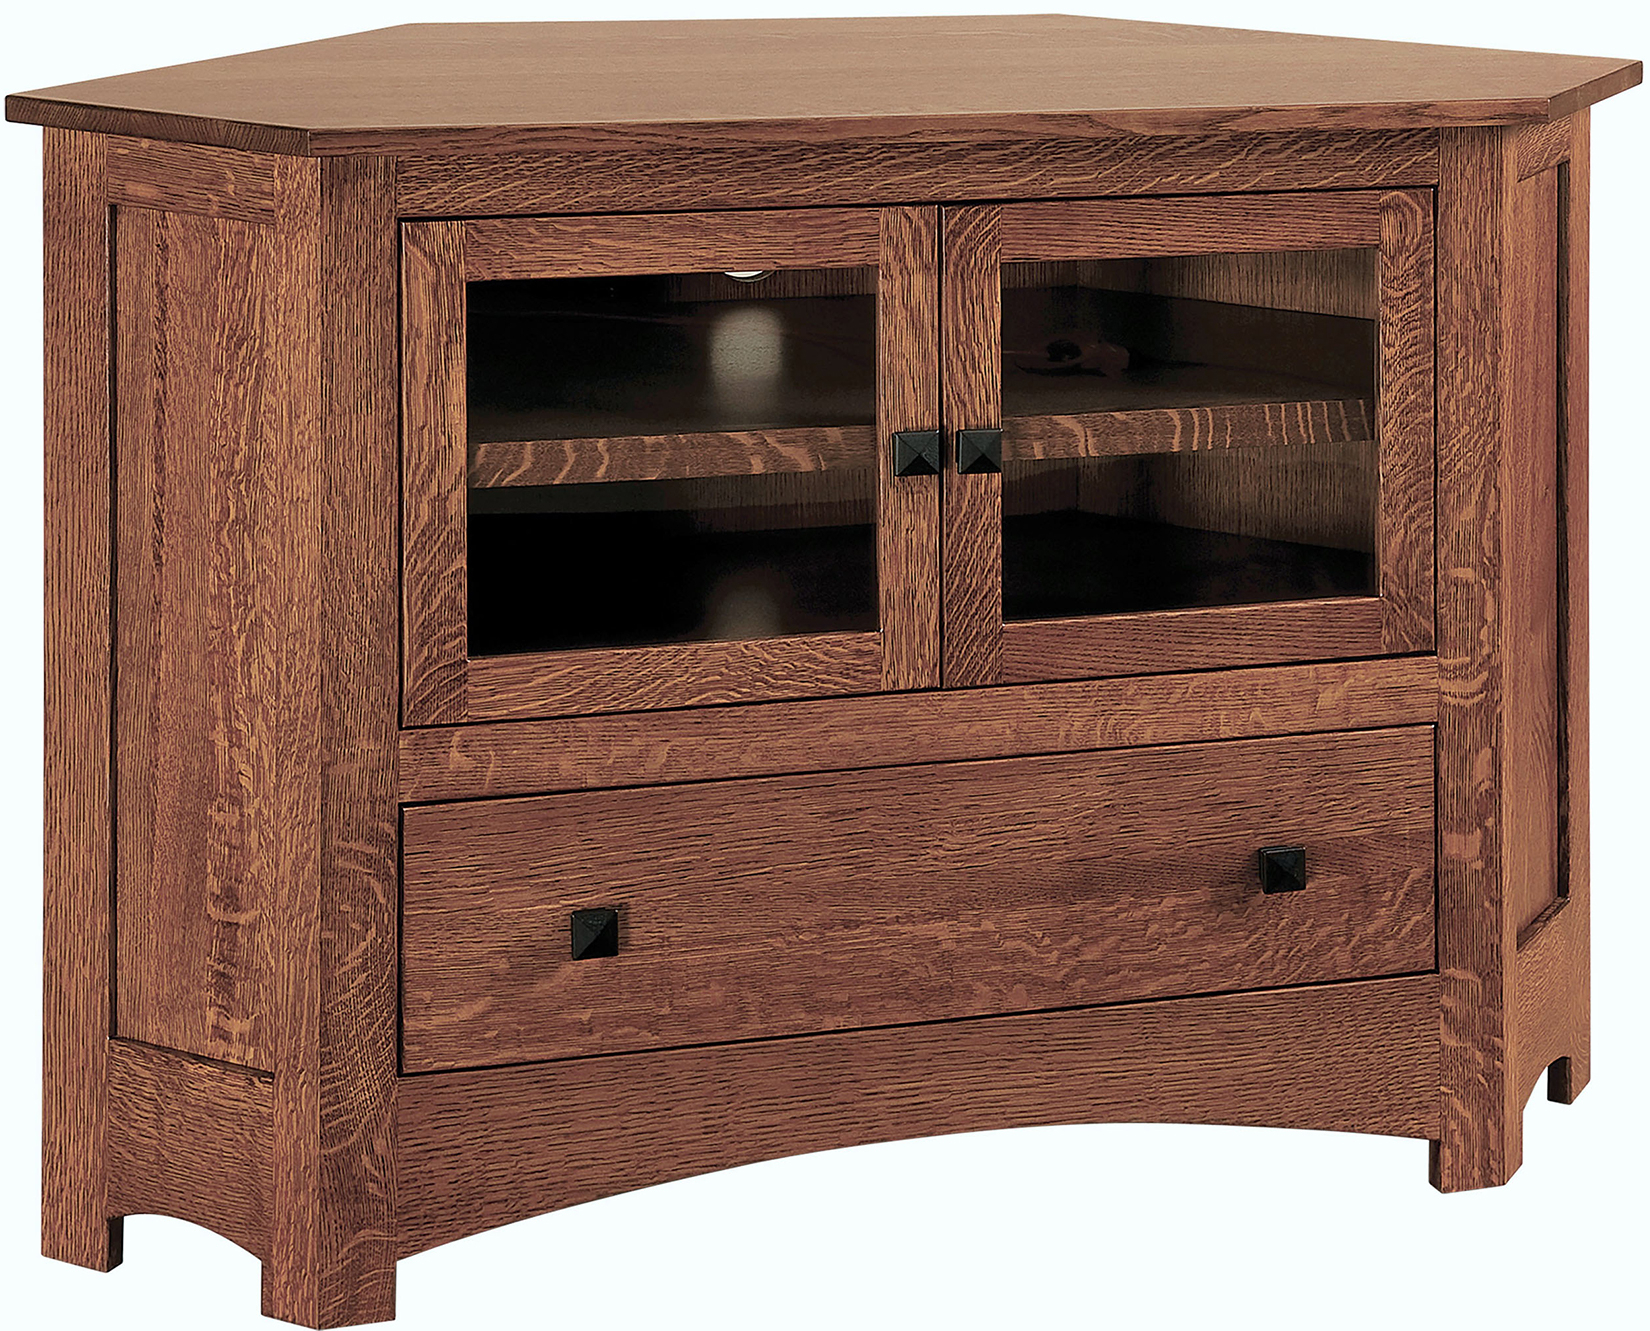 Mission Small Corner Tv Cabinet   Amish Small Mission Intended For Low Corner Tv Stands (View 7 of 15)